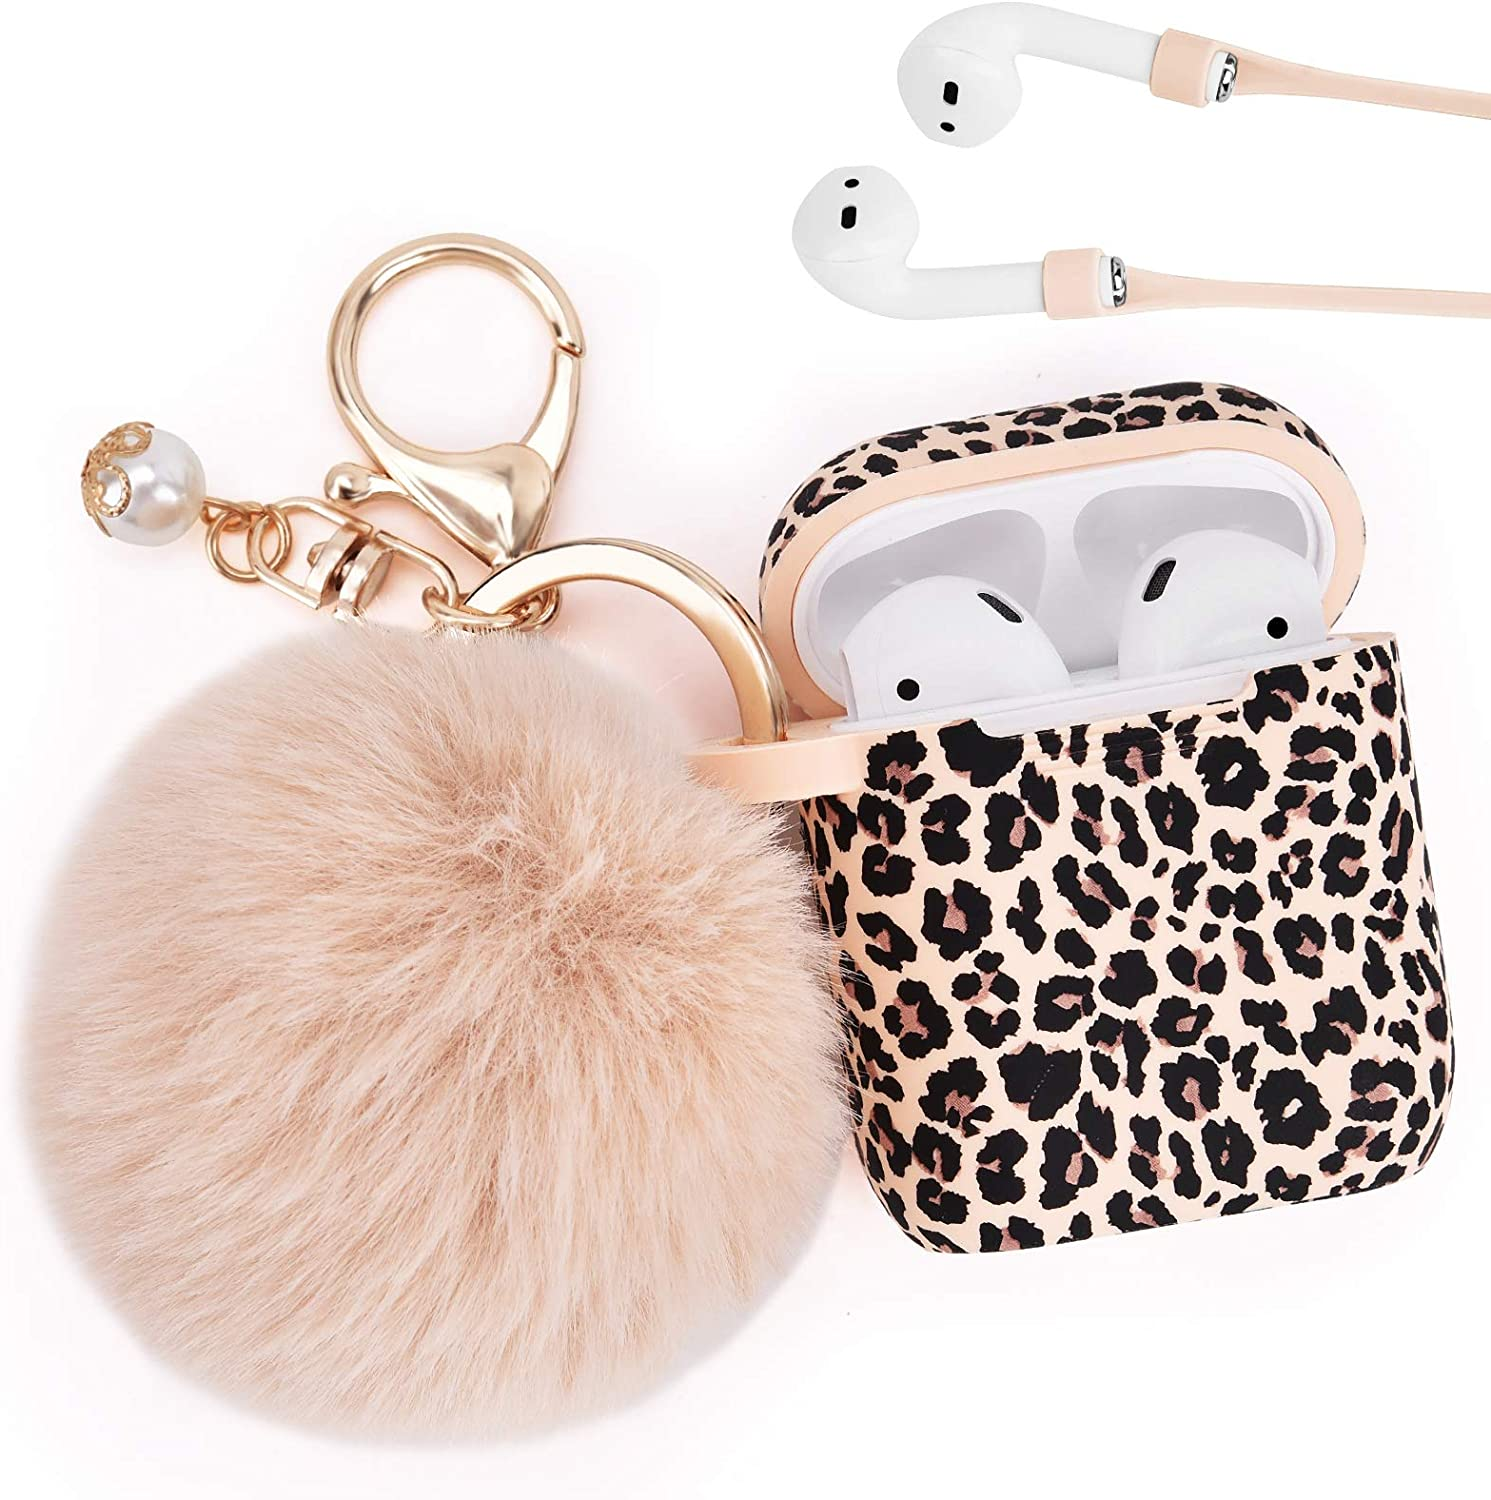 Airpod Case AIRSPO Airpods Case Cover for Apple AirPods 2&1 Silicone Protective Skin Cute Airpod Case for Girls with Pom Pom Fur Ball Keychain/Strap/Accessories (Leopard Print+Fur Ball)